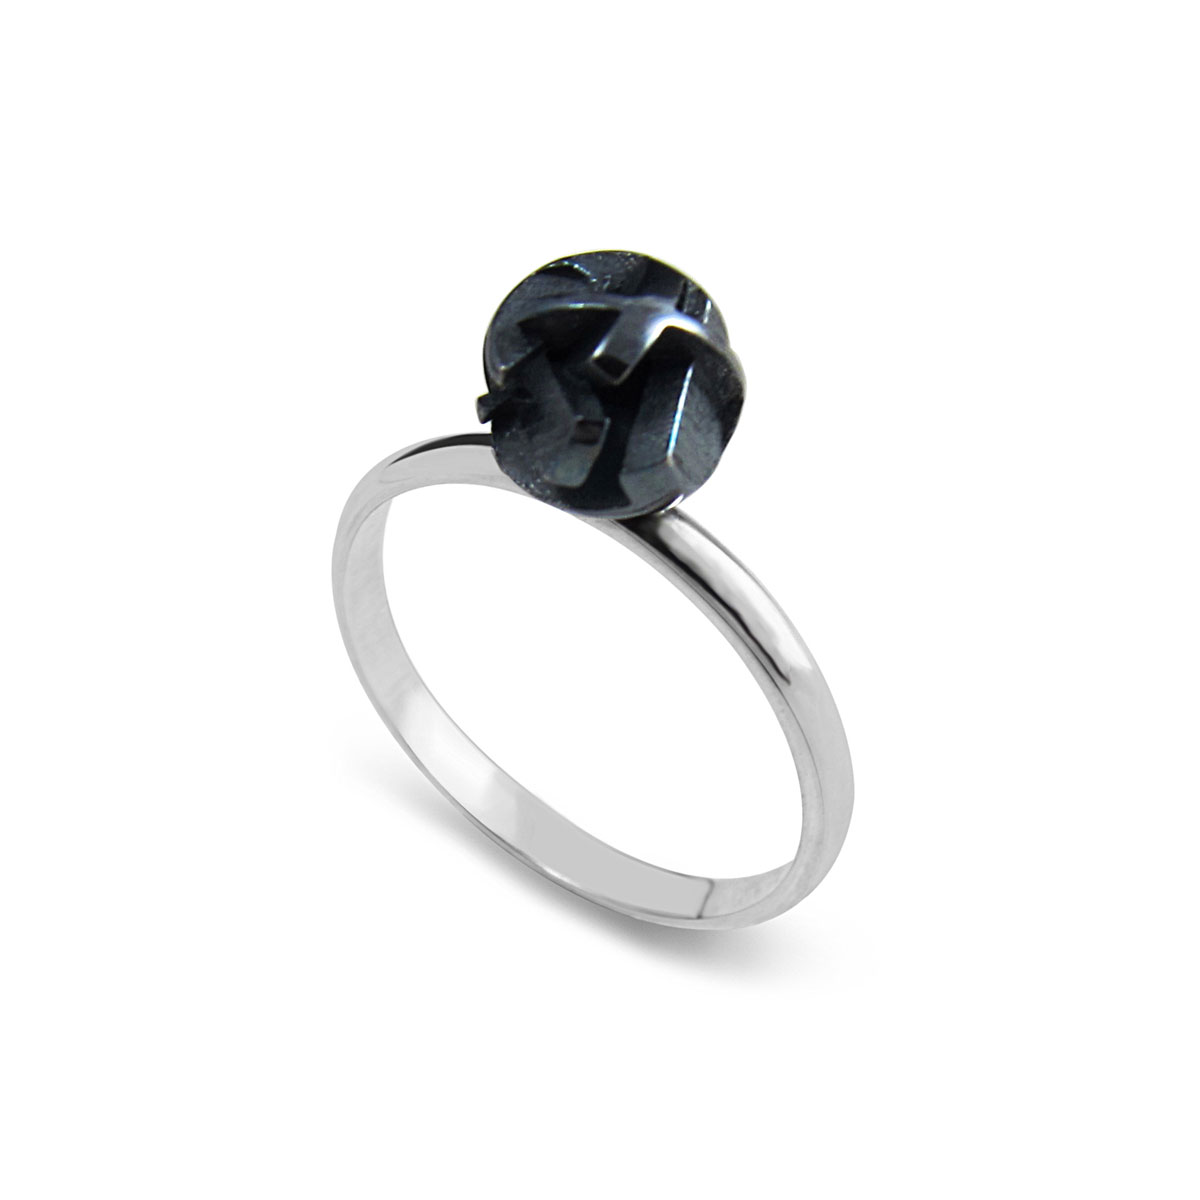 Blackened silver ball ring